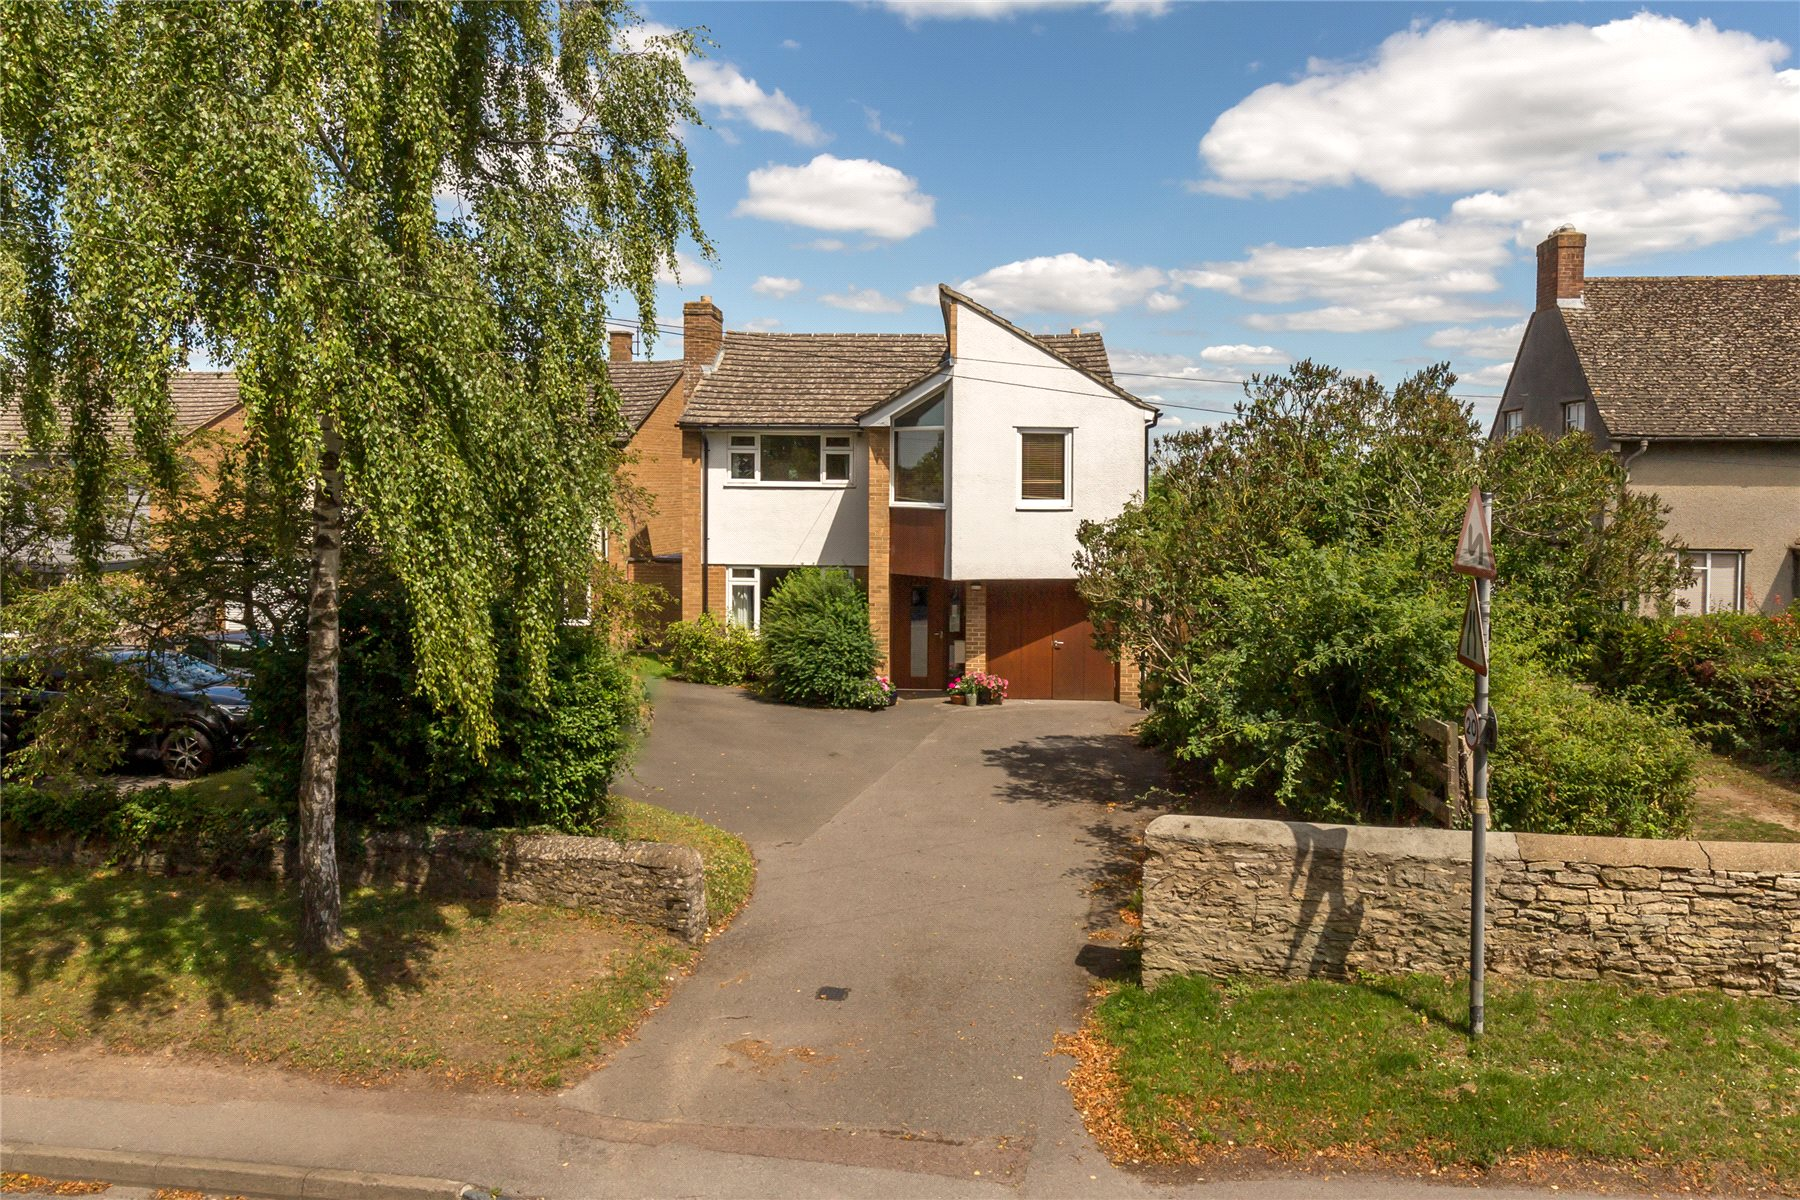 Bletchingdon Road, Islip, Kidlington, Oxfordshire, OX5